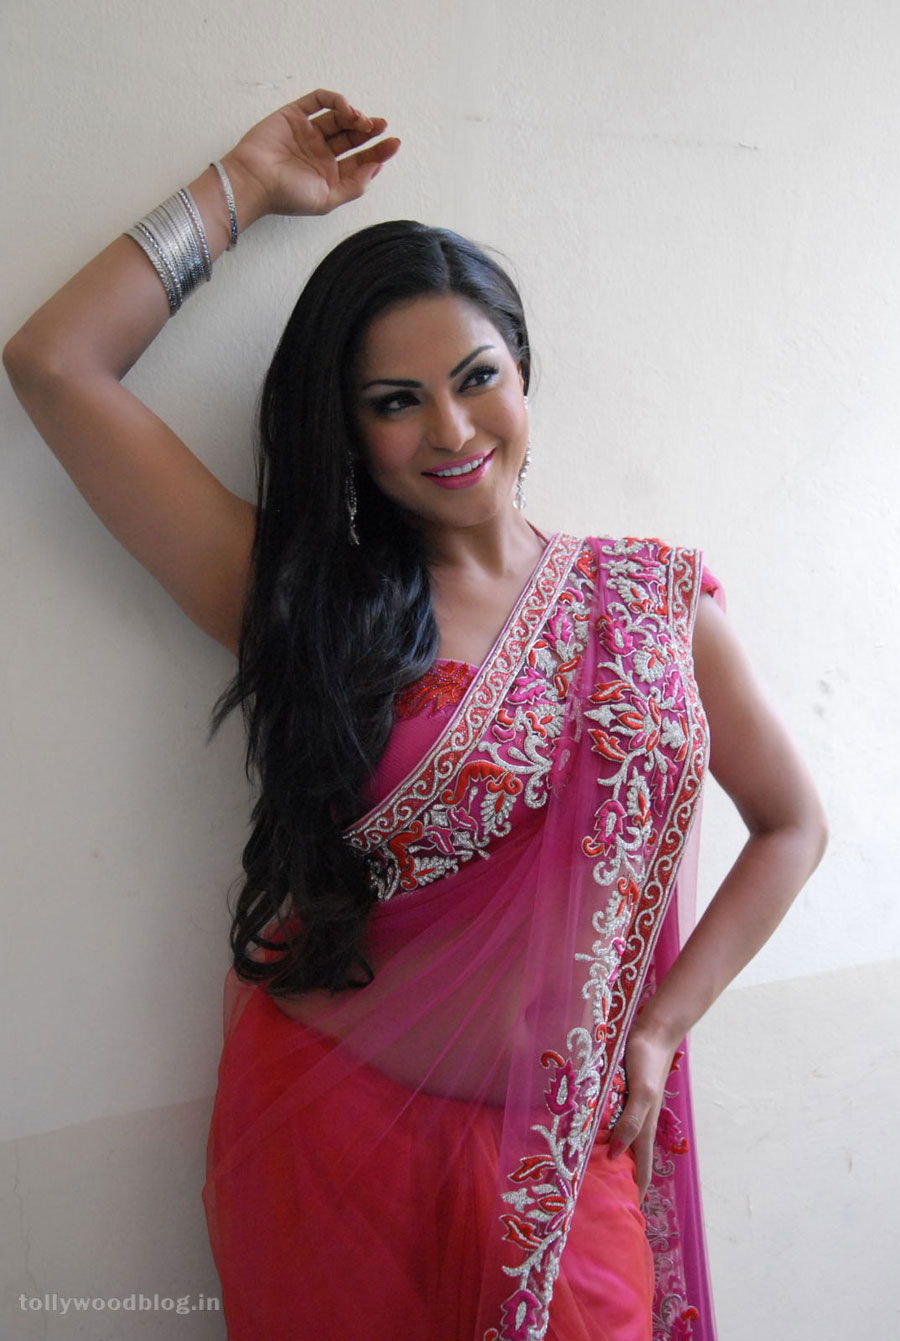 veena malik fuck photos